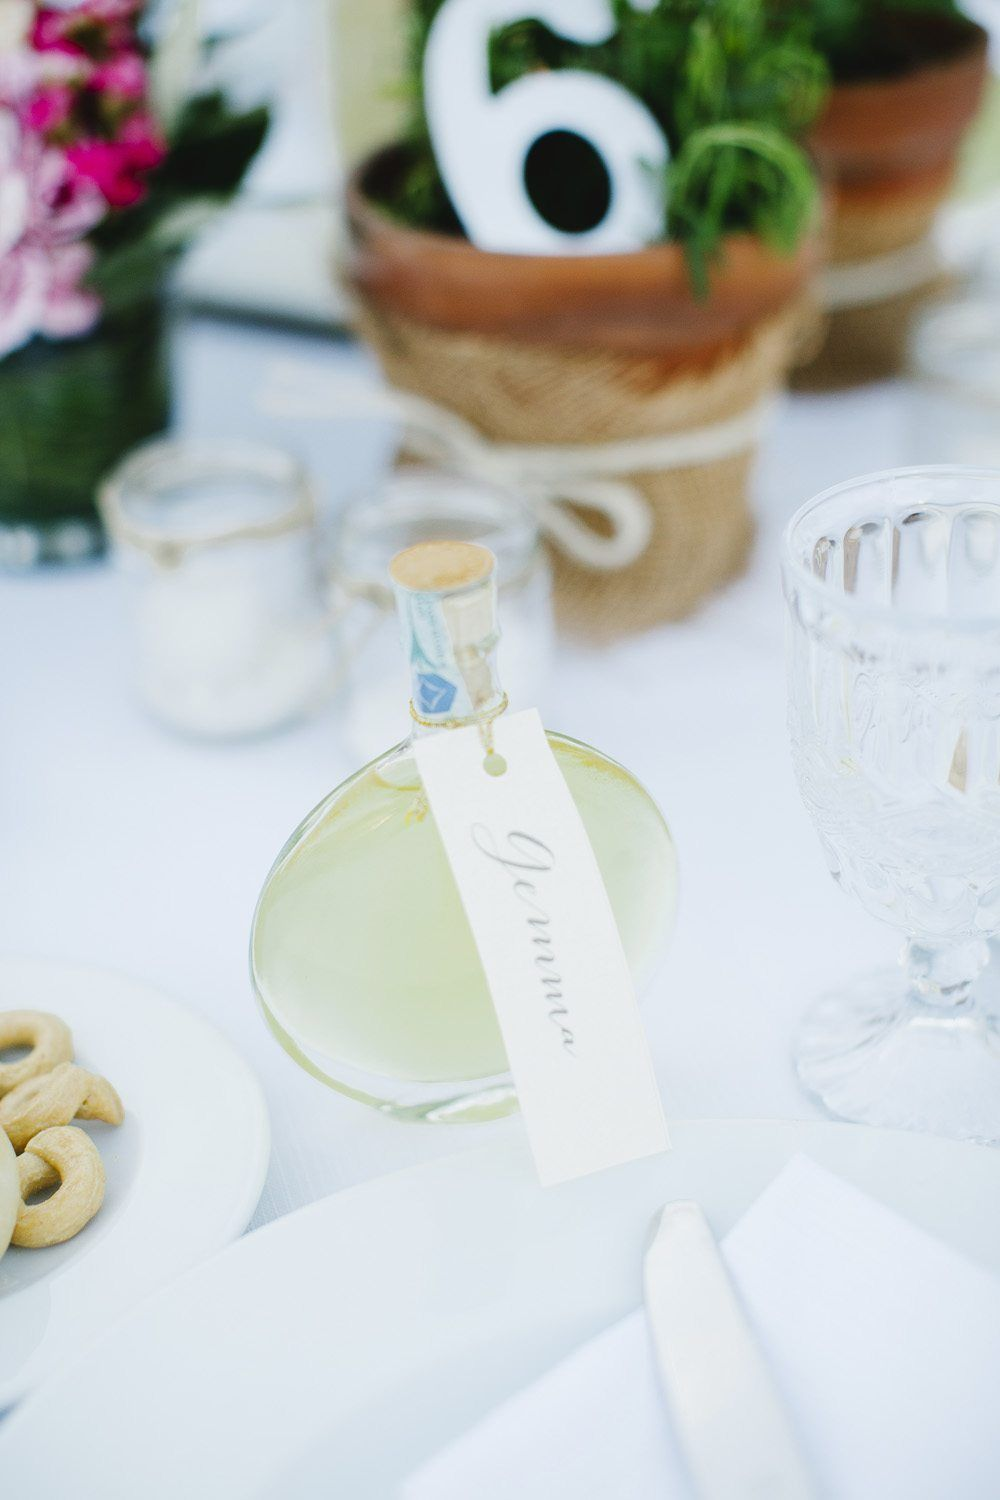 LIMONCELLO favors ae a great keepsake for guests at this wedding in ...